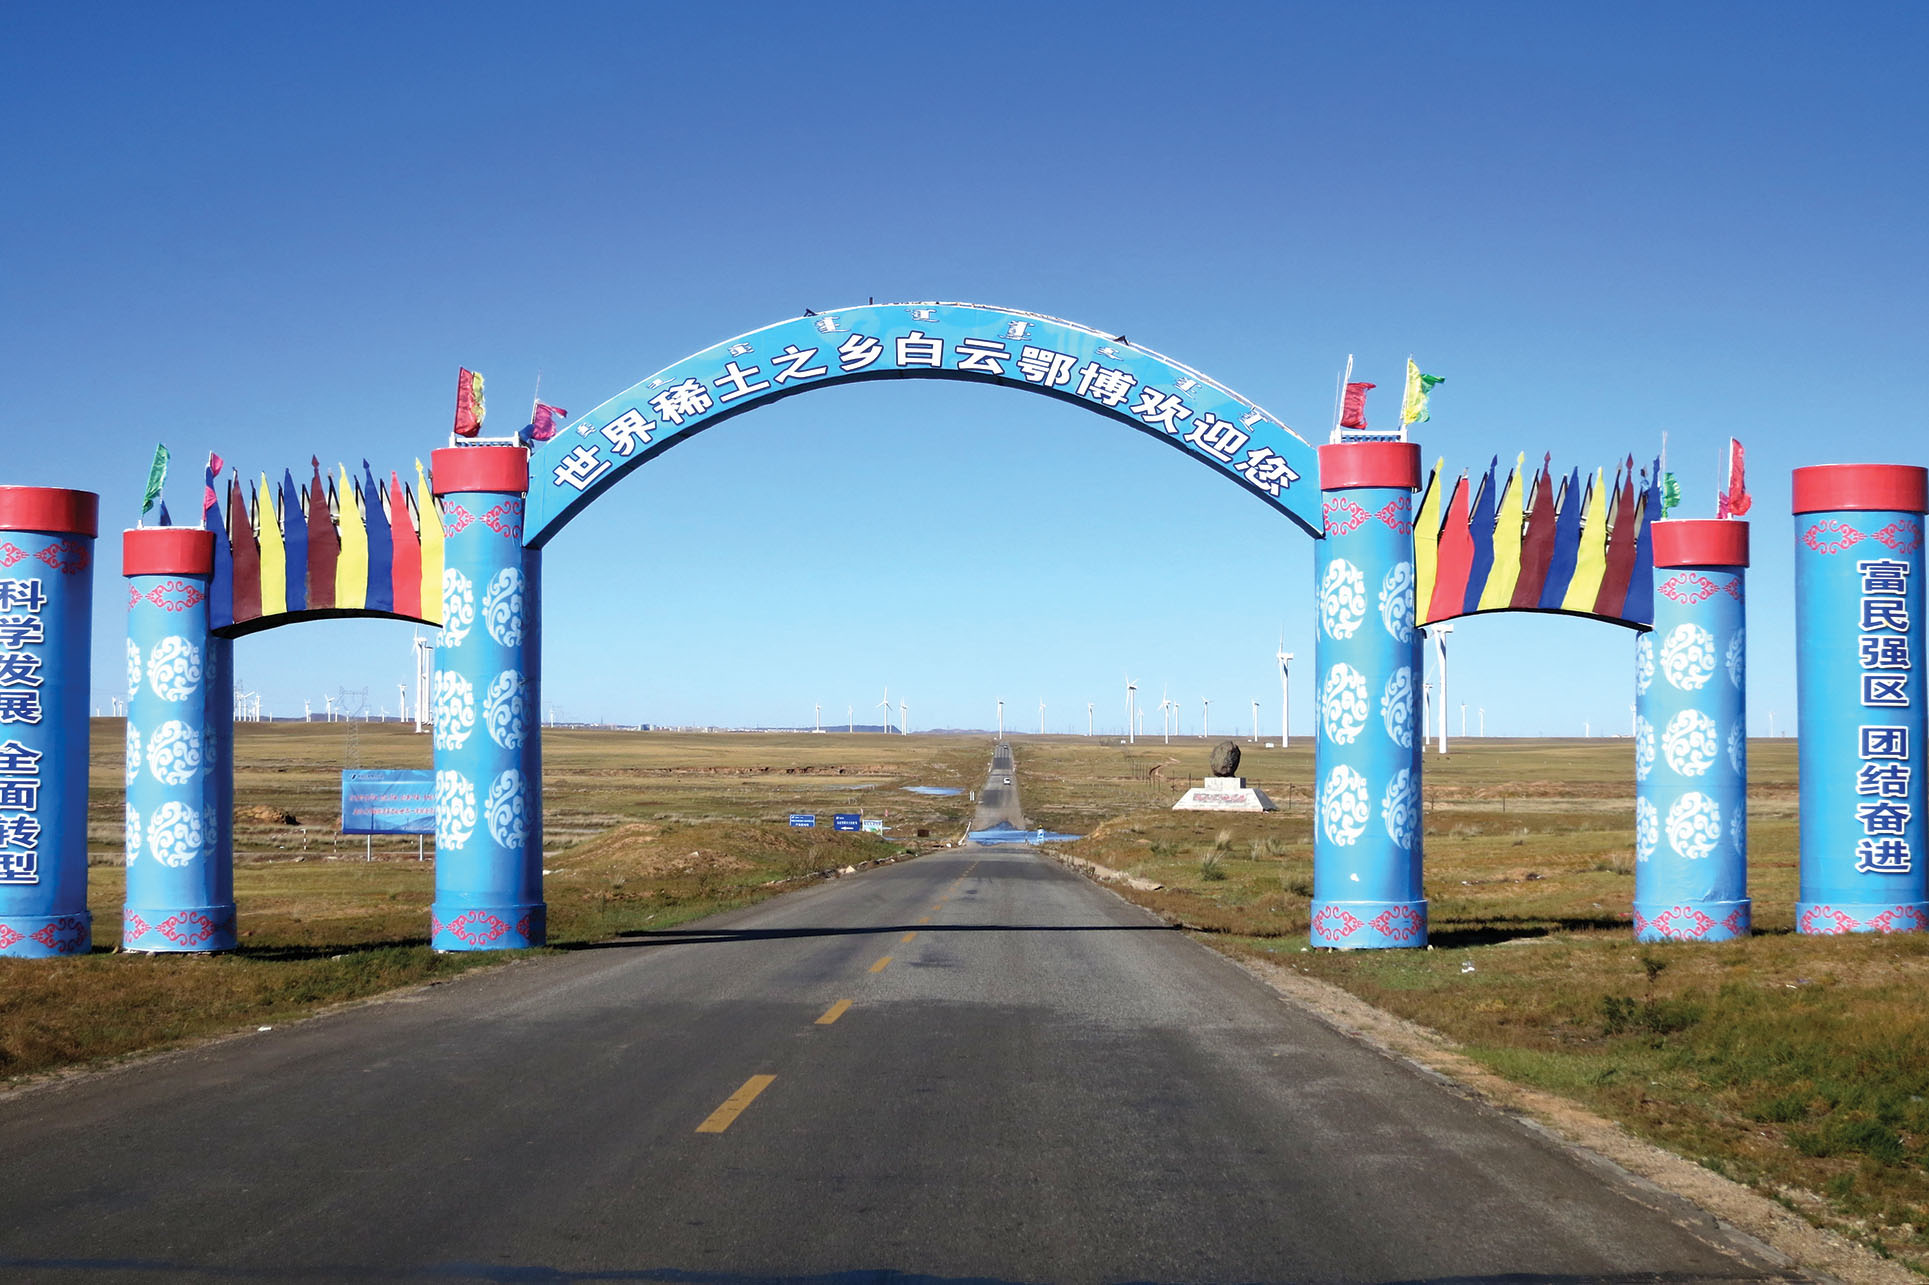 """An archway above a road reads in Chinese, """"Welcome to Bayan Obo, hometown of rare earths."""" (Photo by Julie Klinger.)"""